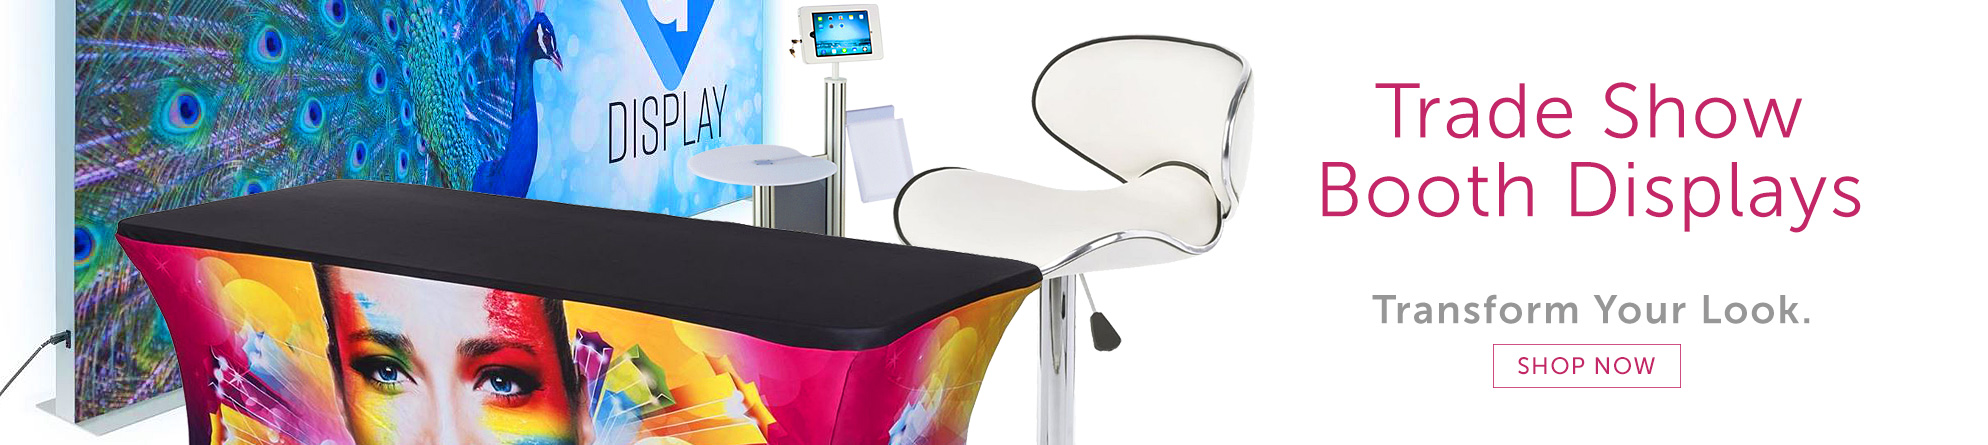 Update your graphics, digital displays, and furnishings for the next trade show with Displays2go!